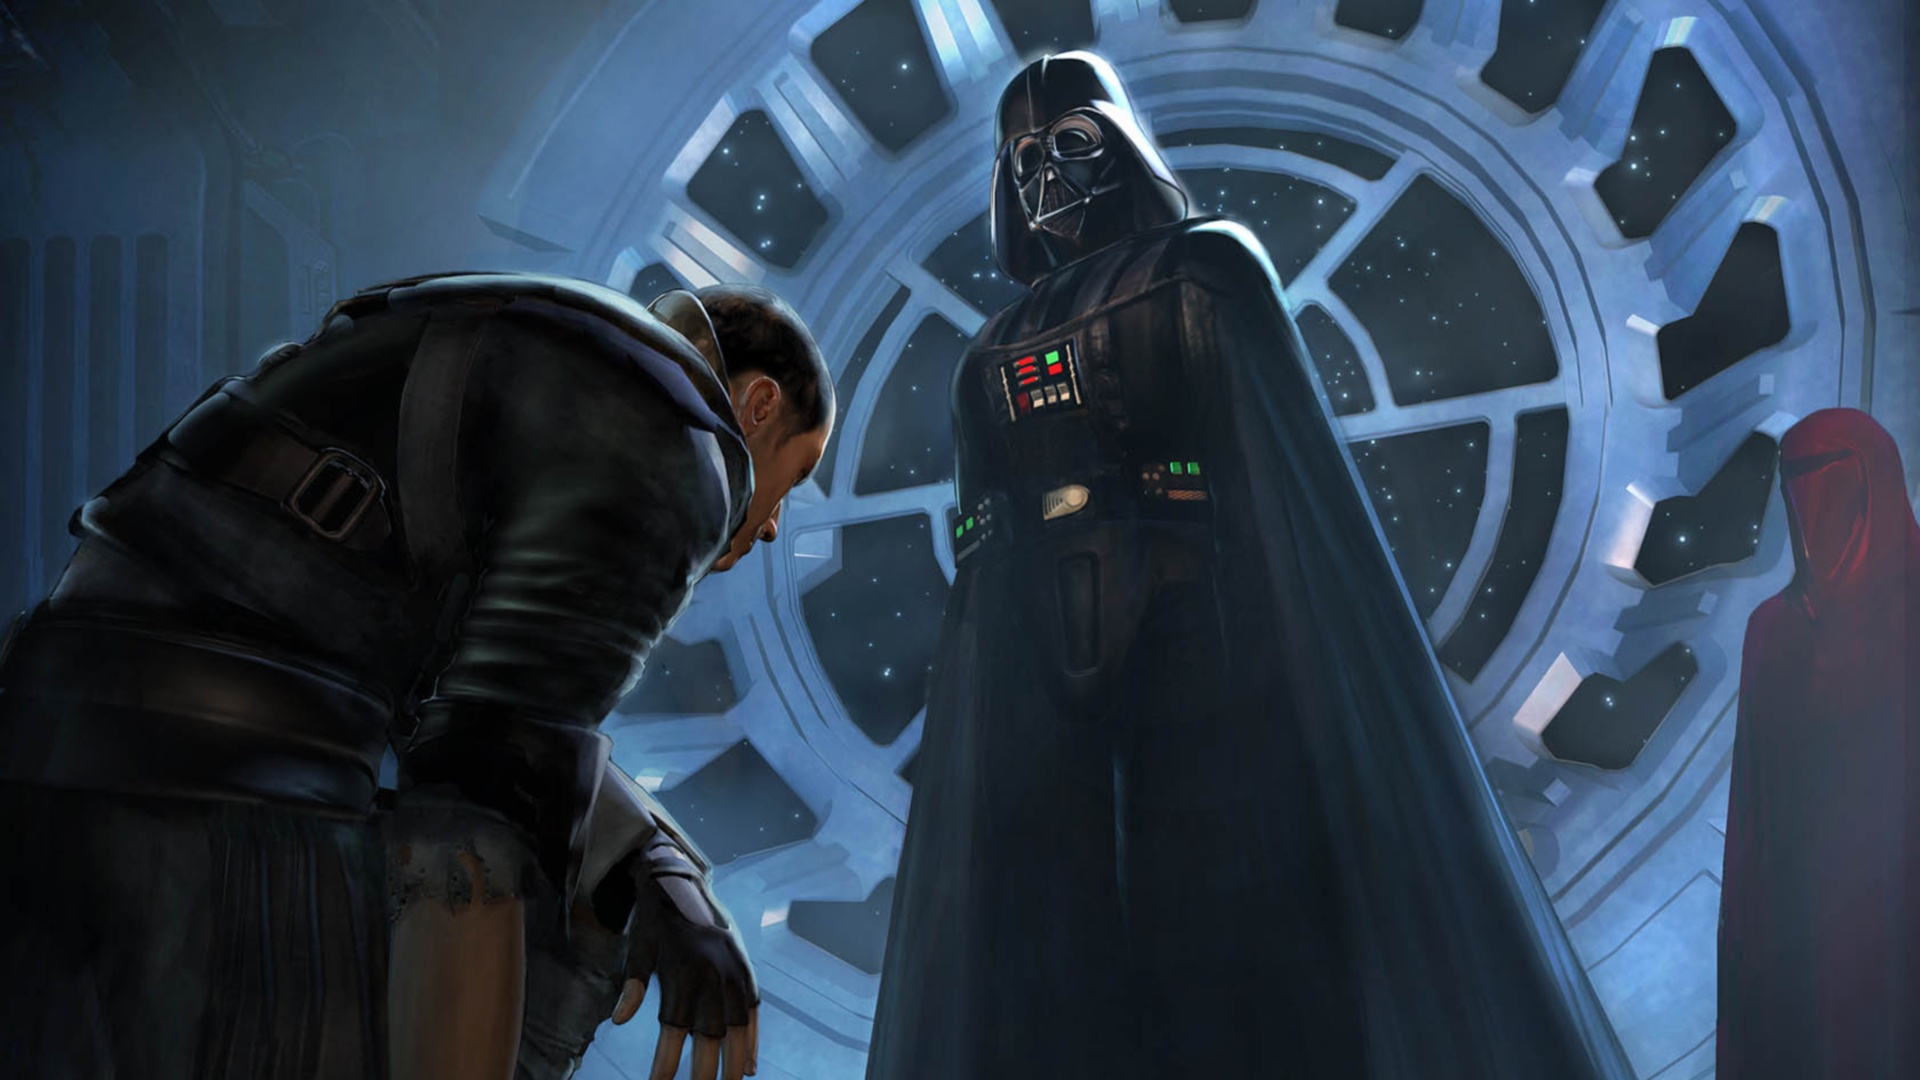 star wars the force unleashed%2C gallery%2C